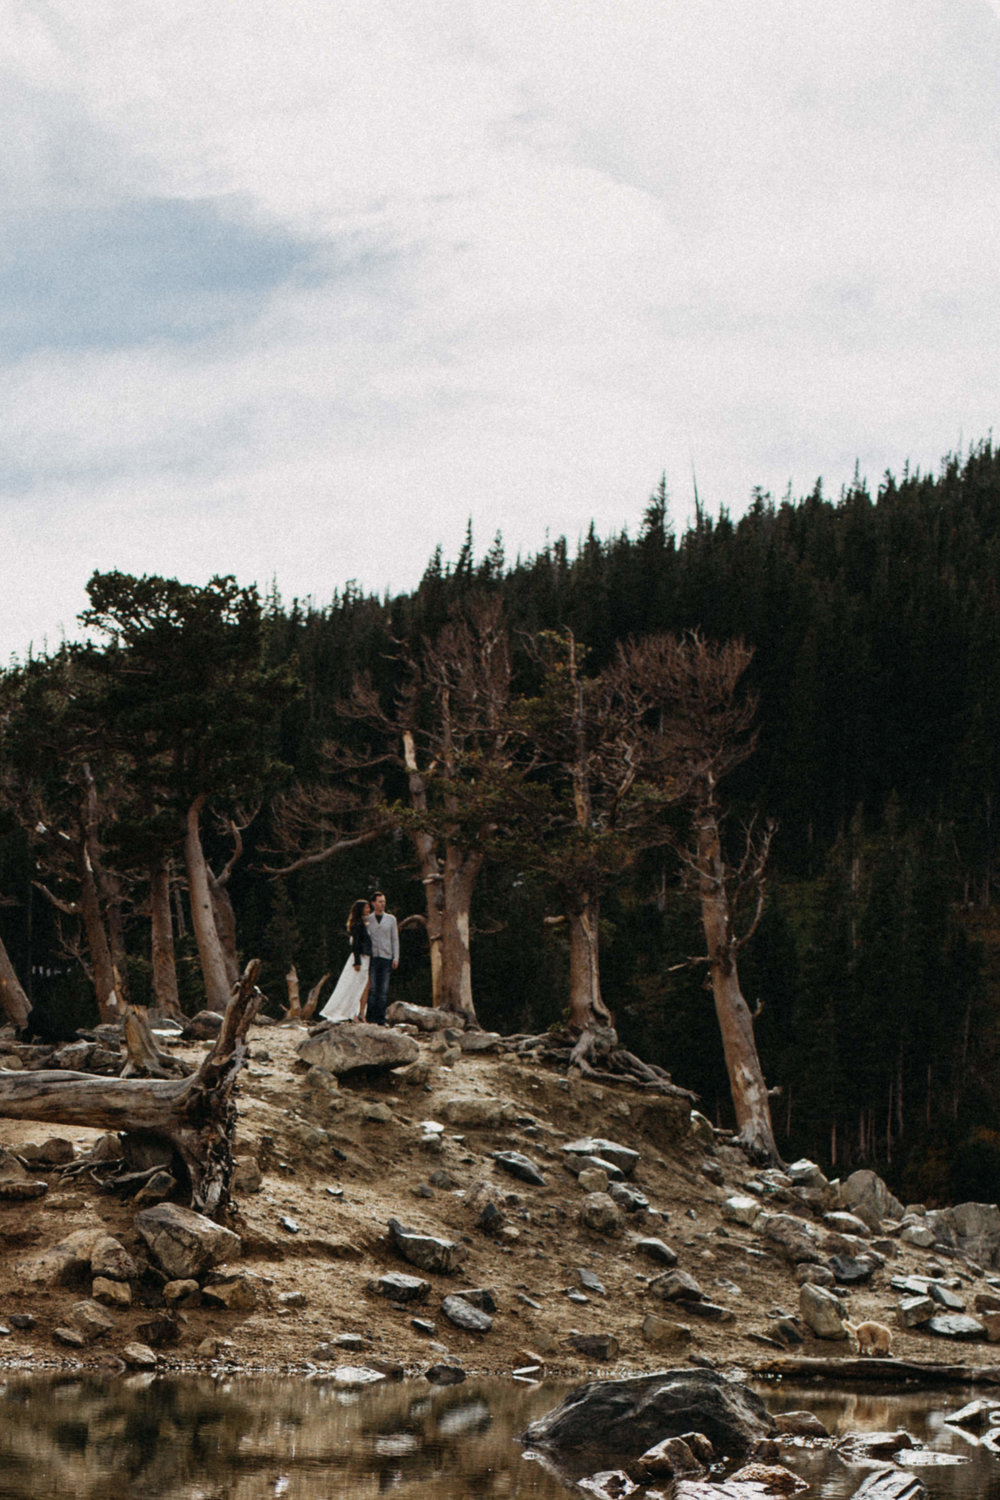 Destination Elopement Photography in Denver, Colorado